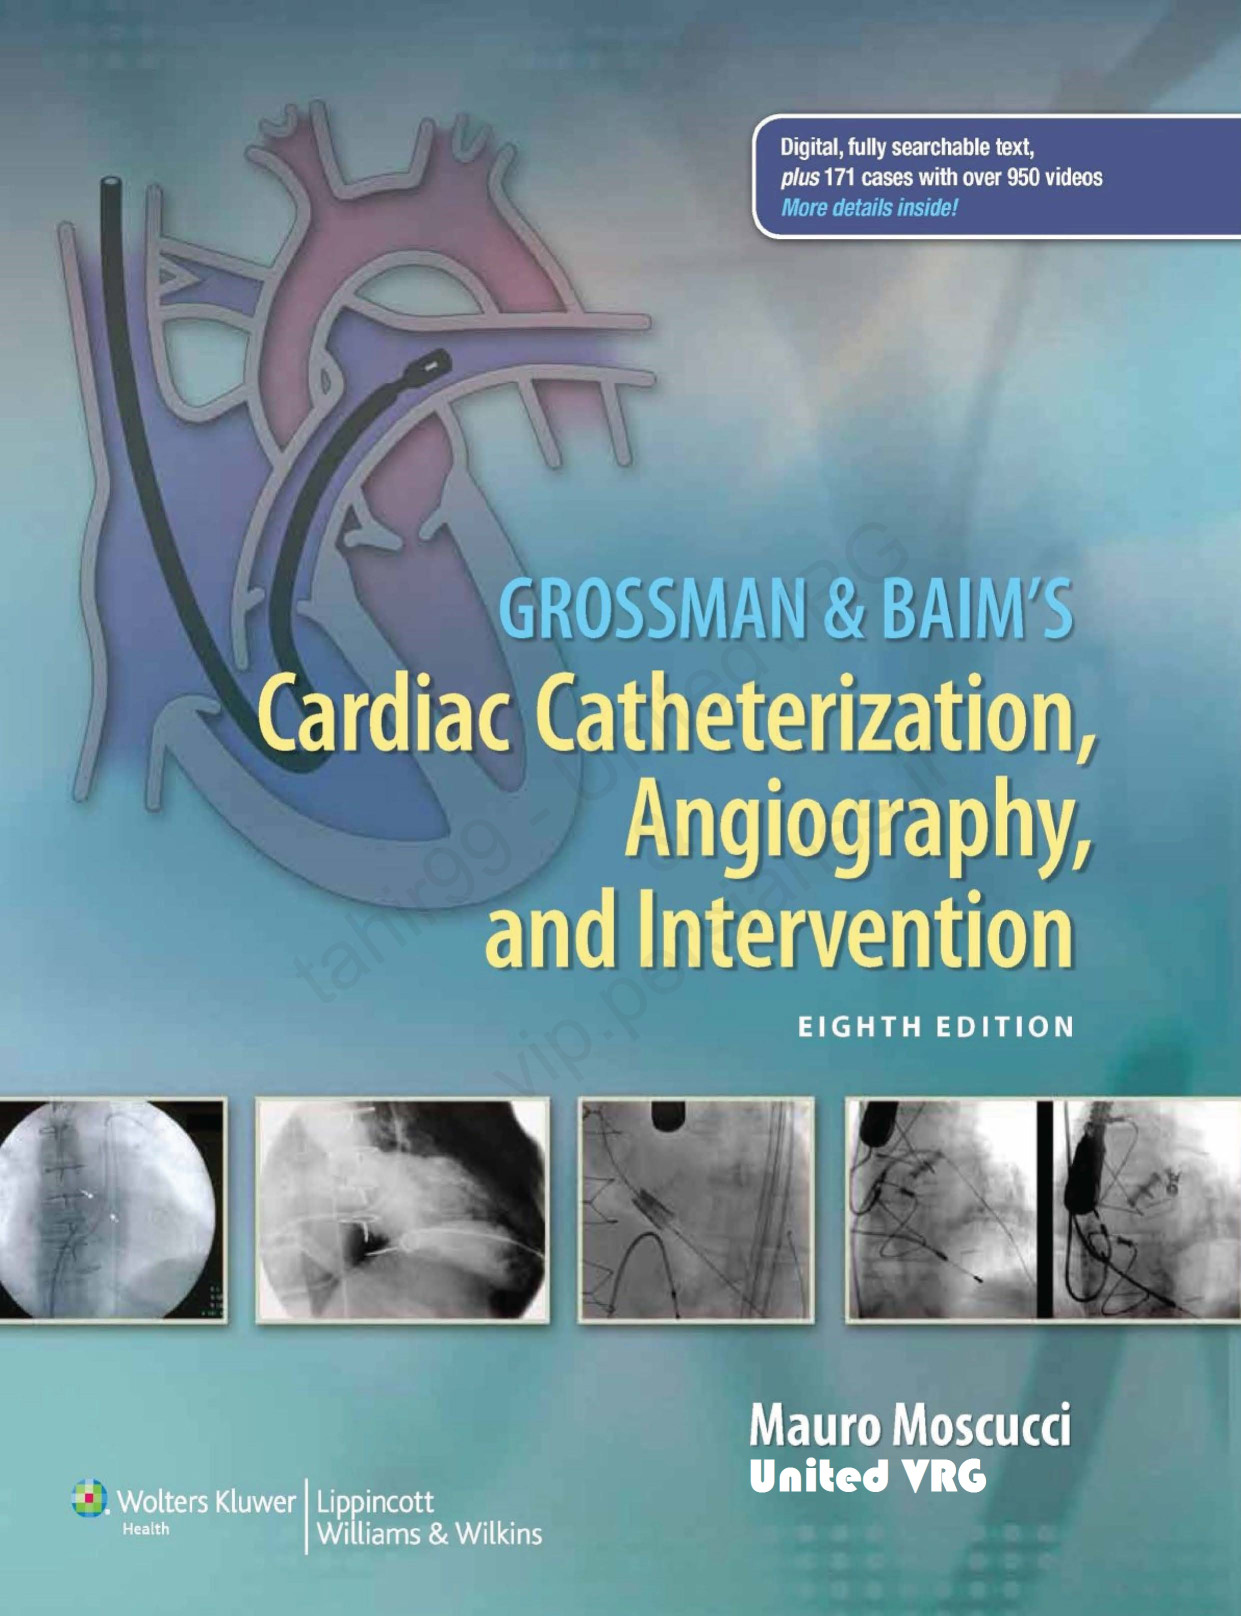 Cardiac Catheterization, Angiography, and Intervention